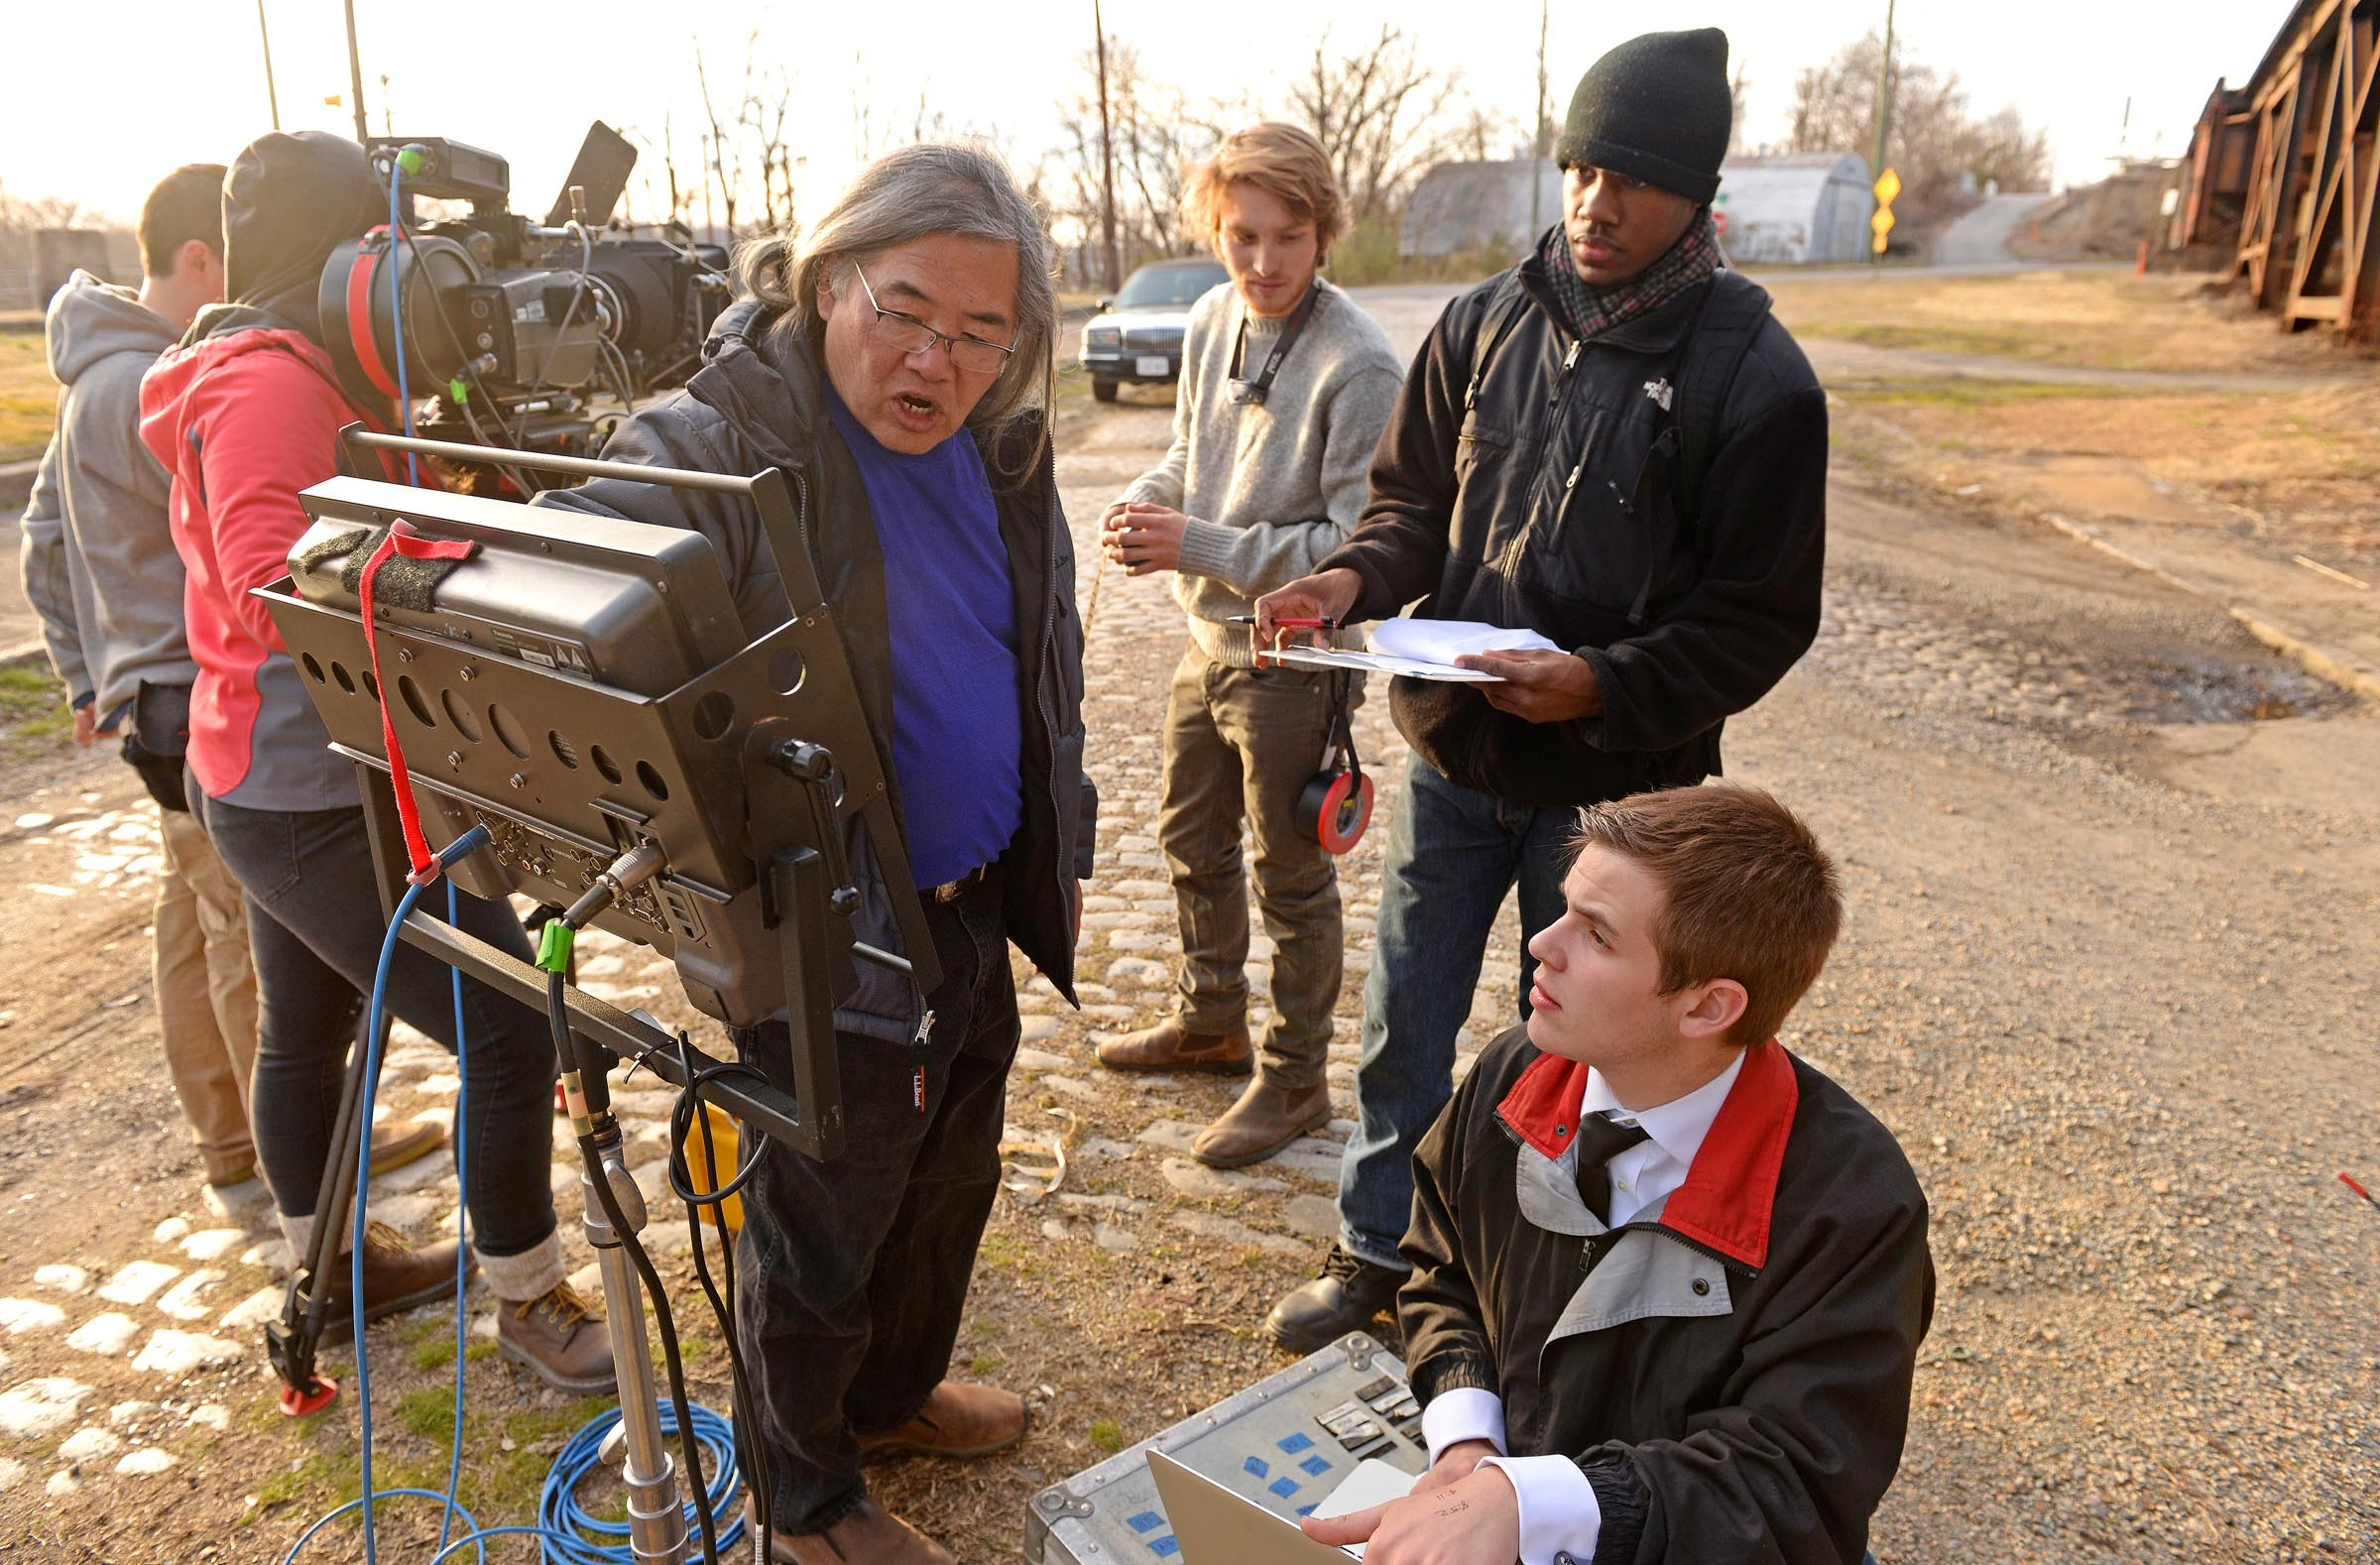 """VCU adjunct professor Art Eng, left, instructs students, including, from right, script supervisor Nick Atanasio, video assistant Payton Harbour and VCU cinema alumnus and assistant camera, Caleb Plutzer. The cinema department also is offering a class comparing film depictions of """"Macbeth"""" with Macfadyen's production. - SCOTT ELMQUIST"""